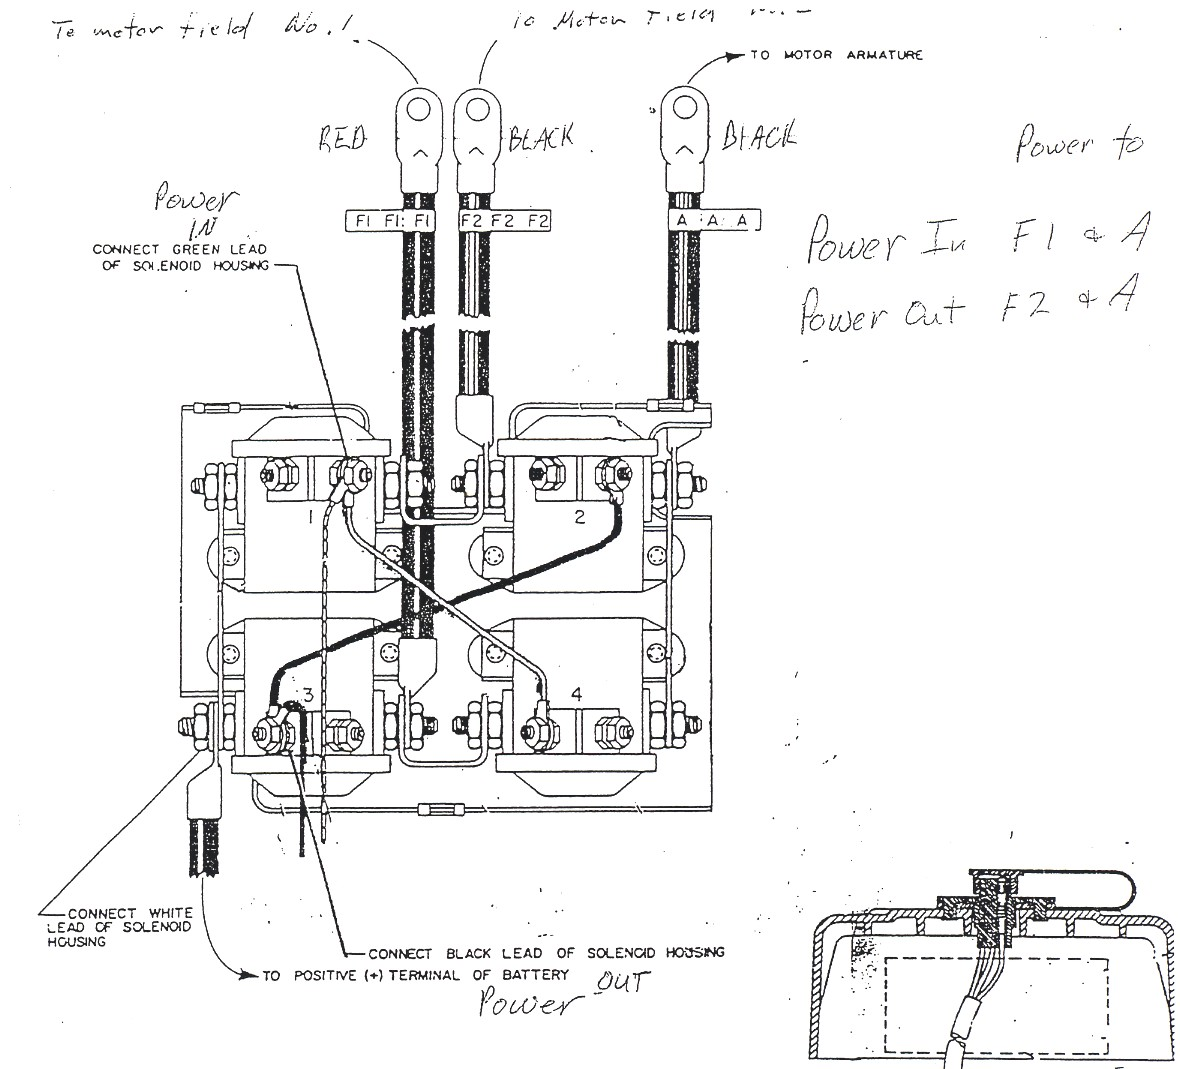 80 untitled_0689e0d674eea10f43090f1fea7c785fc8250009 need help wiring winch if someone could look over my diagram 4 post continuous duty solenoid wiring diagram at highcare.asia